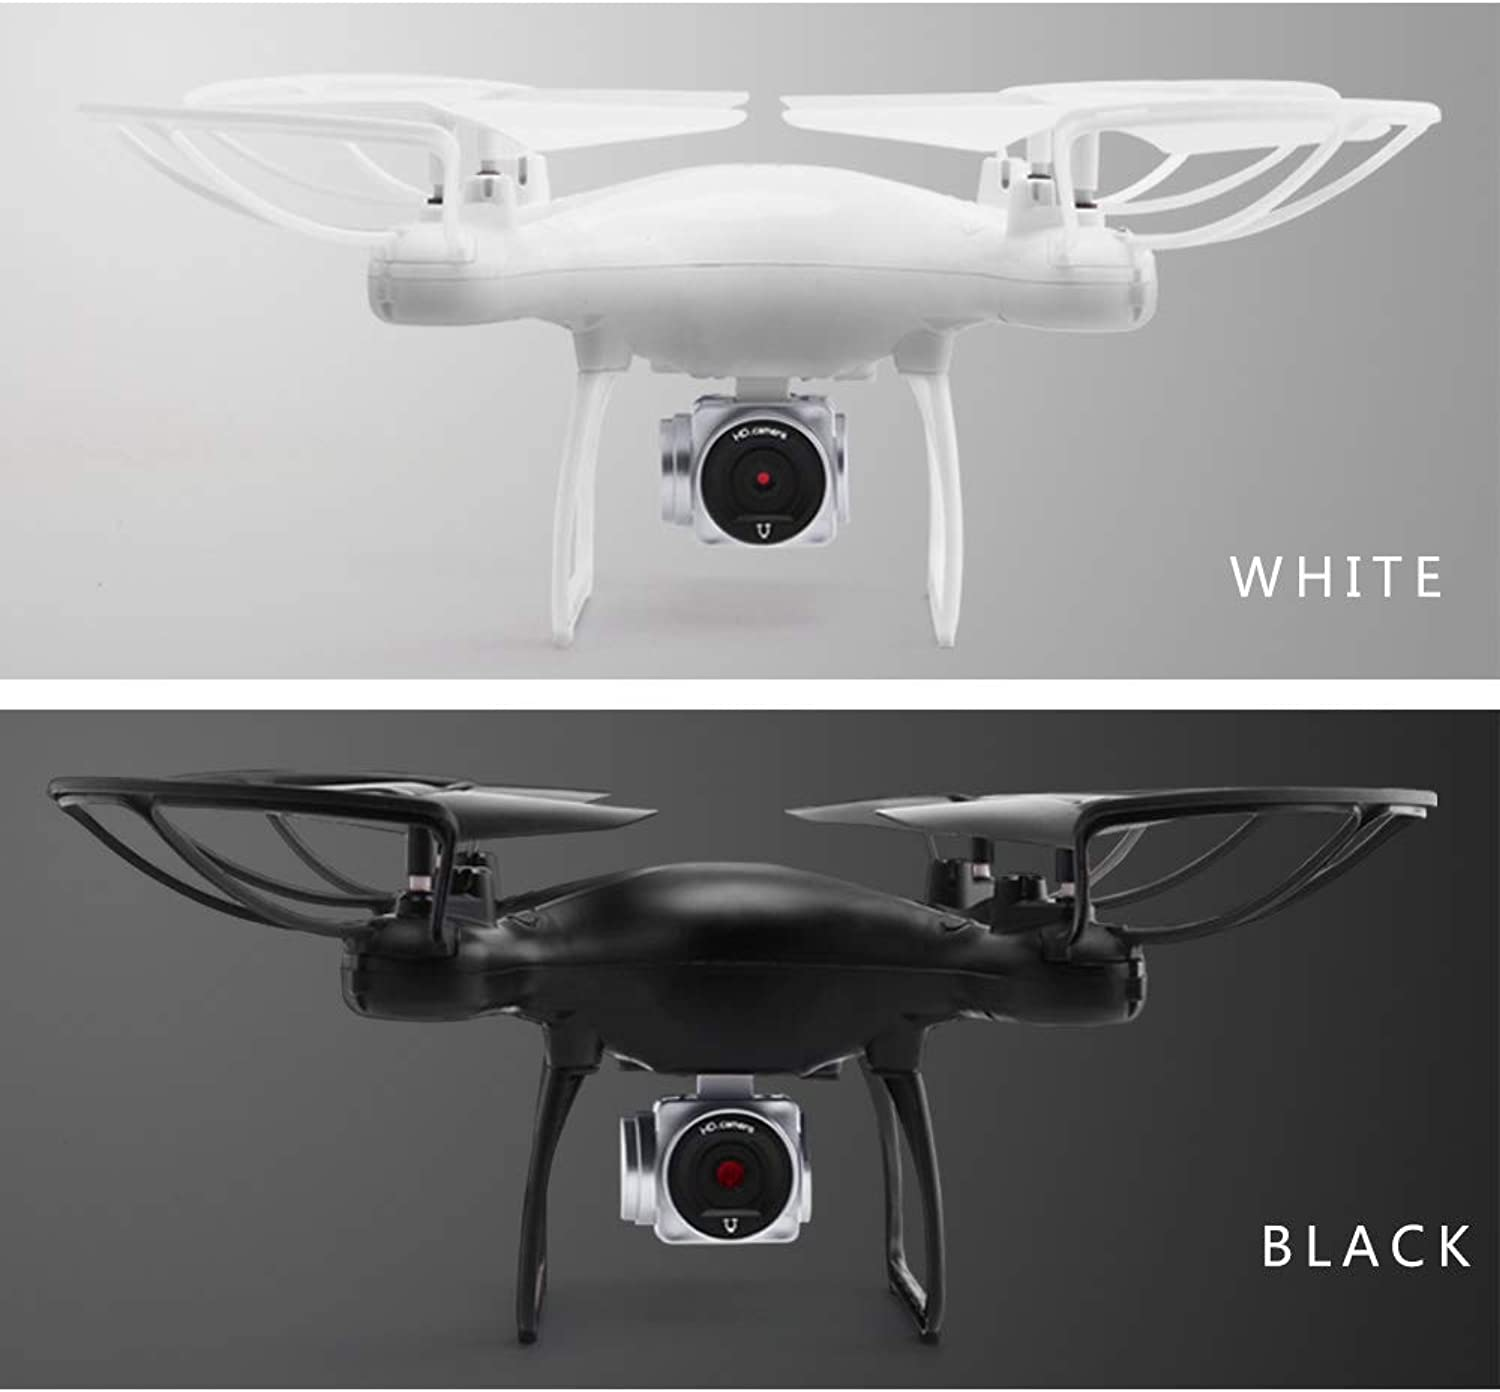 WiFi FPV 720P HD Camera, Best Drone for Beginners with Altitude Hold, Trajectory Flight, 3D Flips, Headless Mode, One Key Operation,white640P